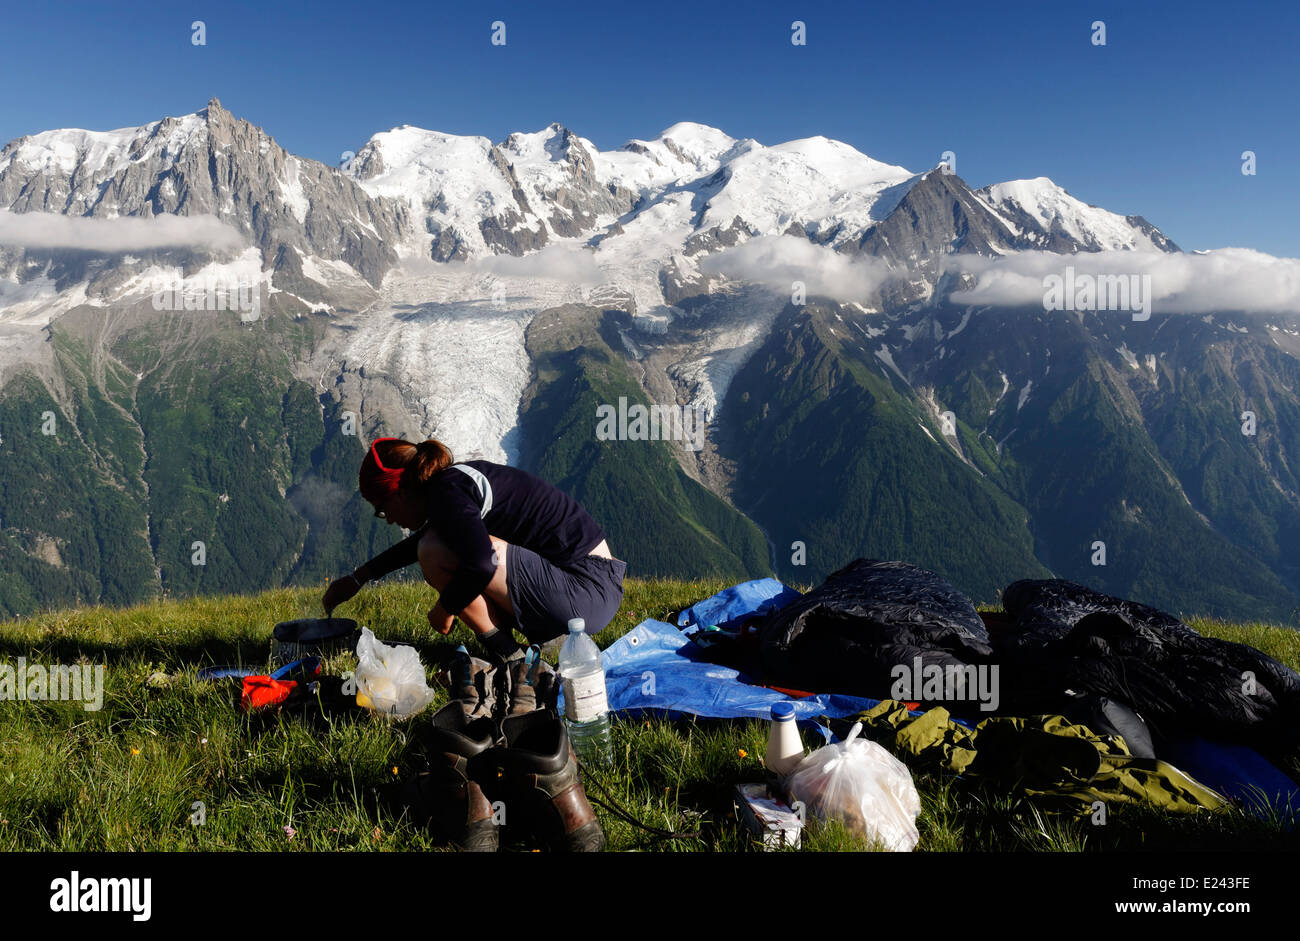 A lady camper preparing food wild camping on le Brevent  in the French Alps with the Mont Blanc massif beyond - Stock Image